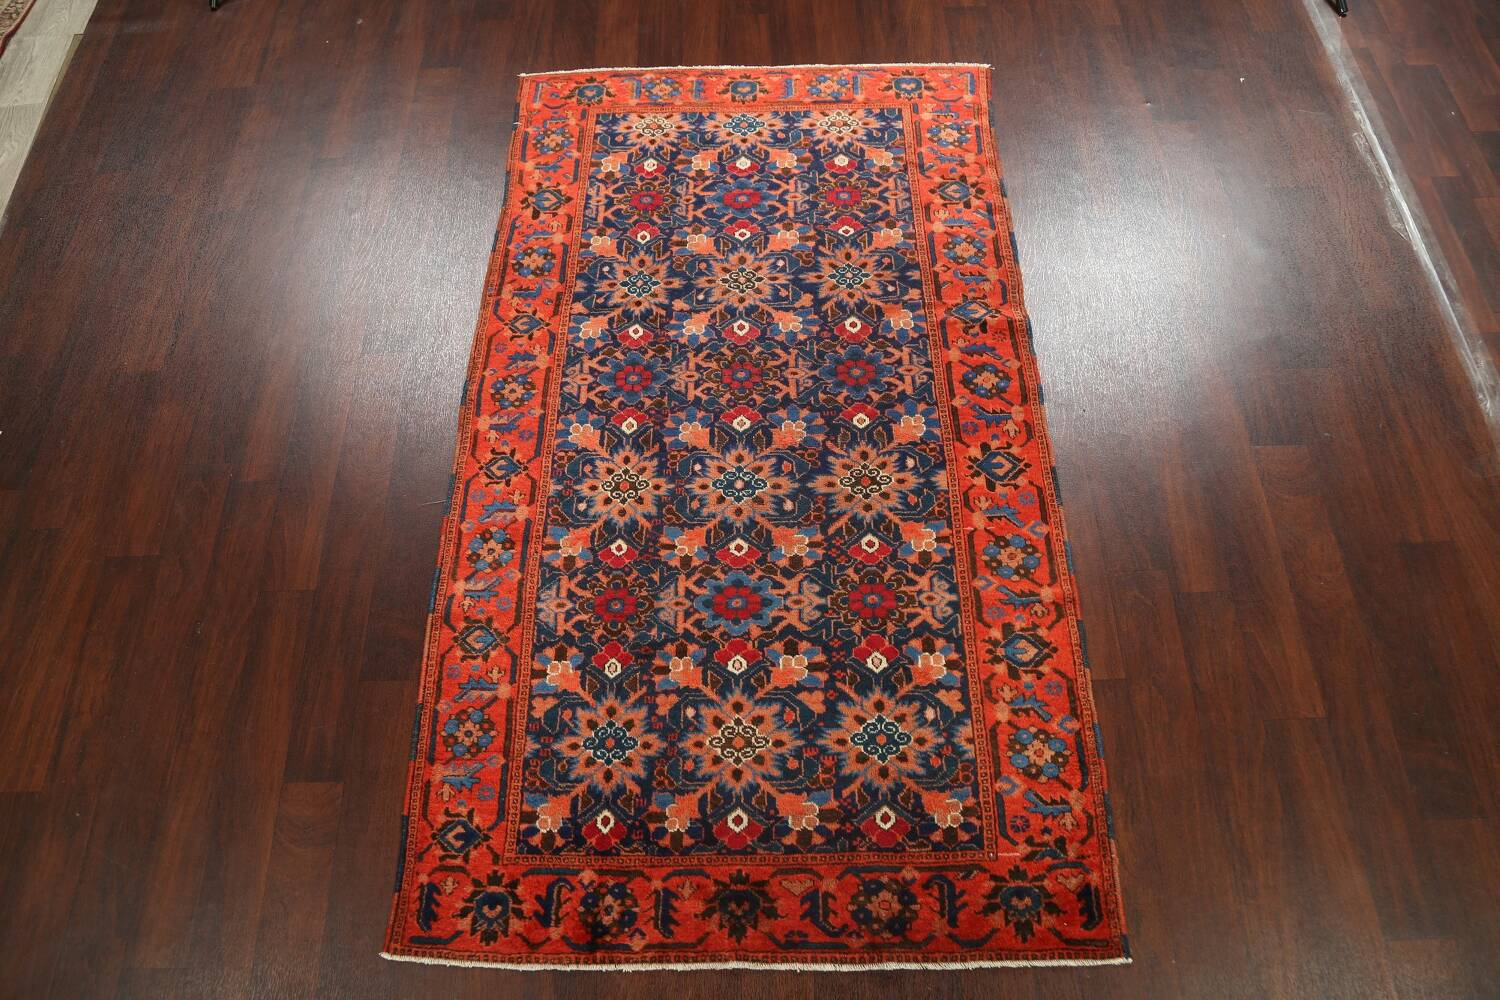 Antique 100% Vegetable Dye Malayer Persian Area Rug 4x7 image 2